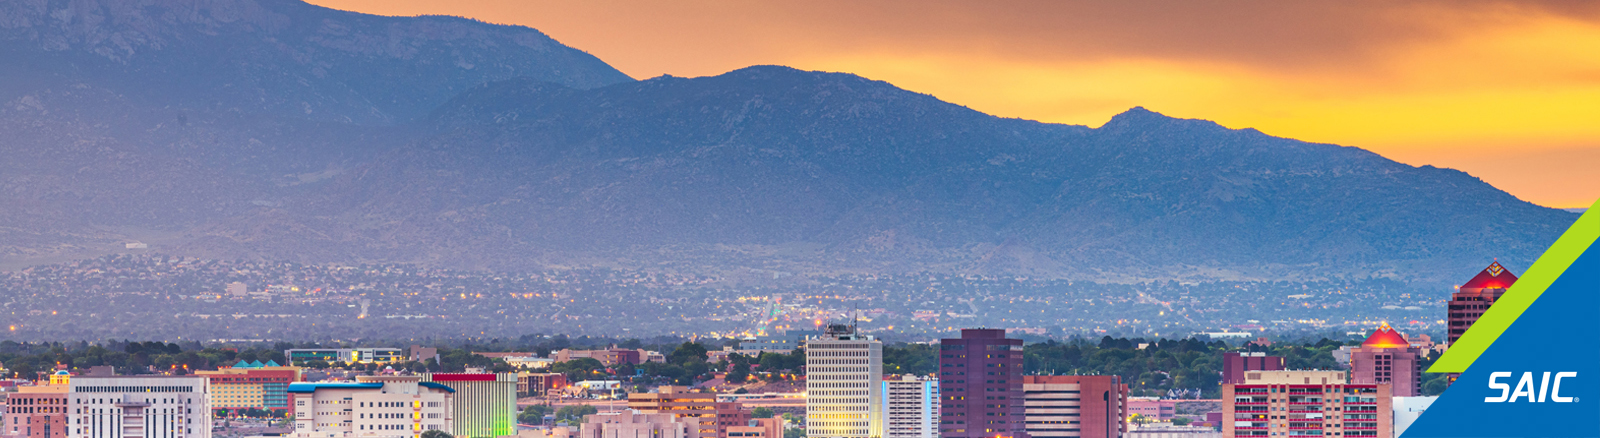 Join our National Technology and Engineering Solutions Team in Albuquerque, NM